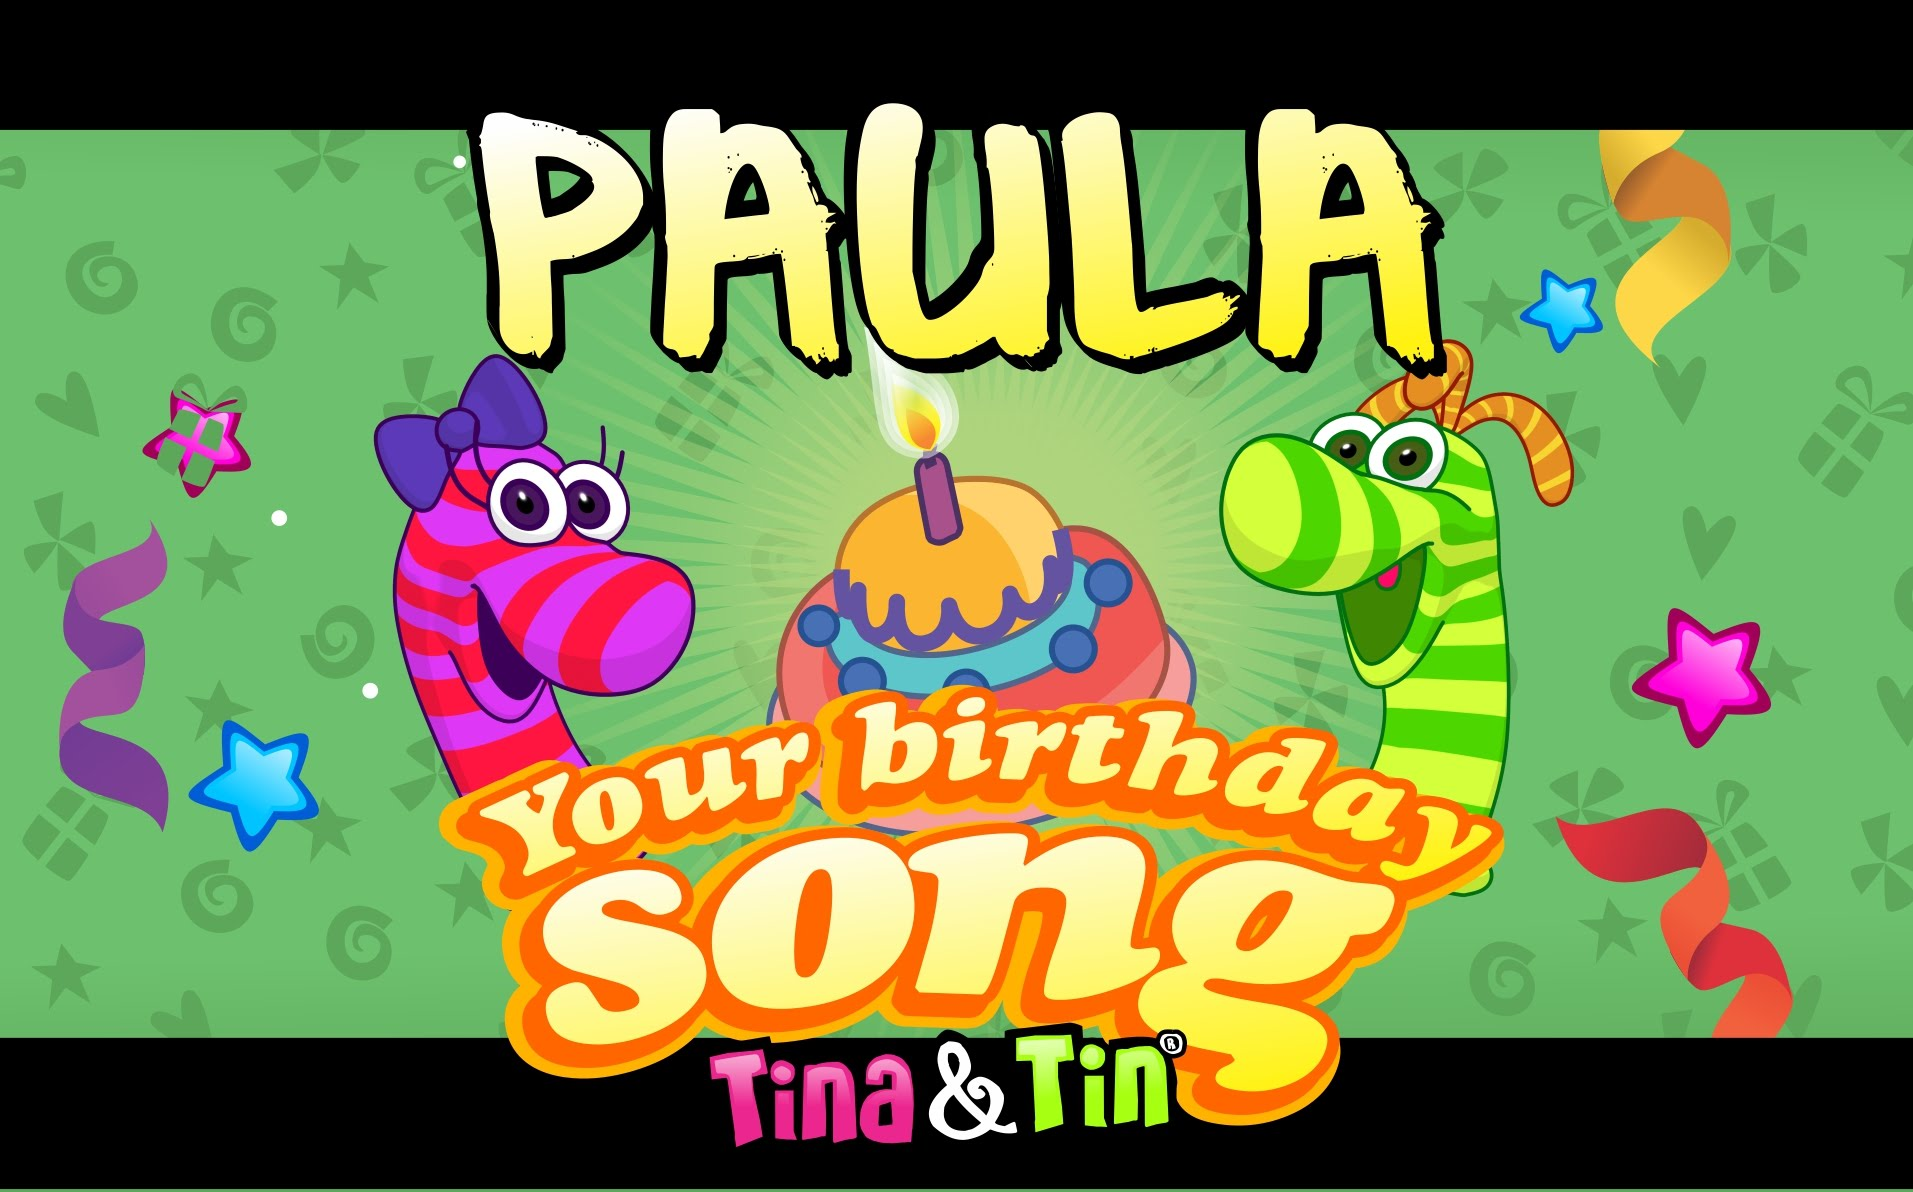 happy birthday paula ; maxresdefault